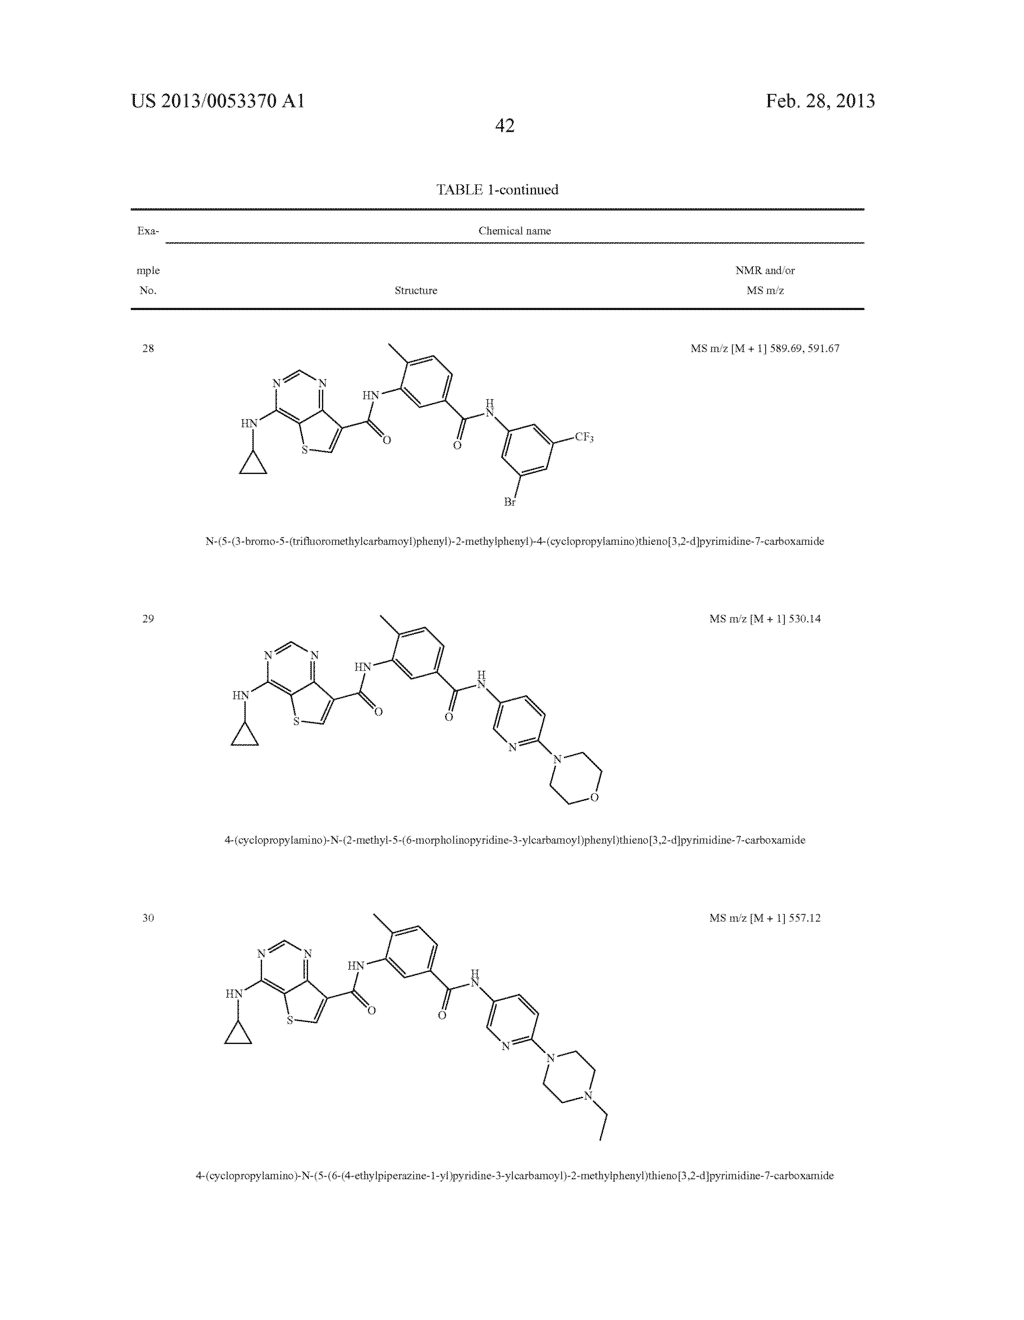 THIENO[3,2-d]PYRIMIDINE DERIVATIVES HAVING INHIBITORY ACTIVITY ON PROTEIN     KINASES - diagram, schematic, and image 43